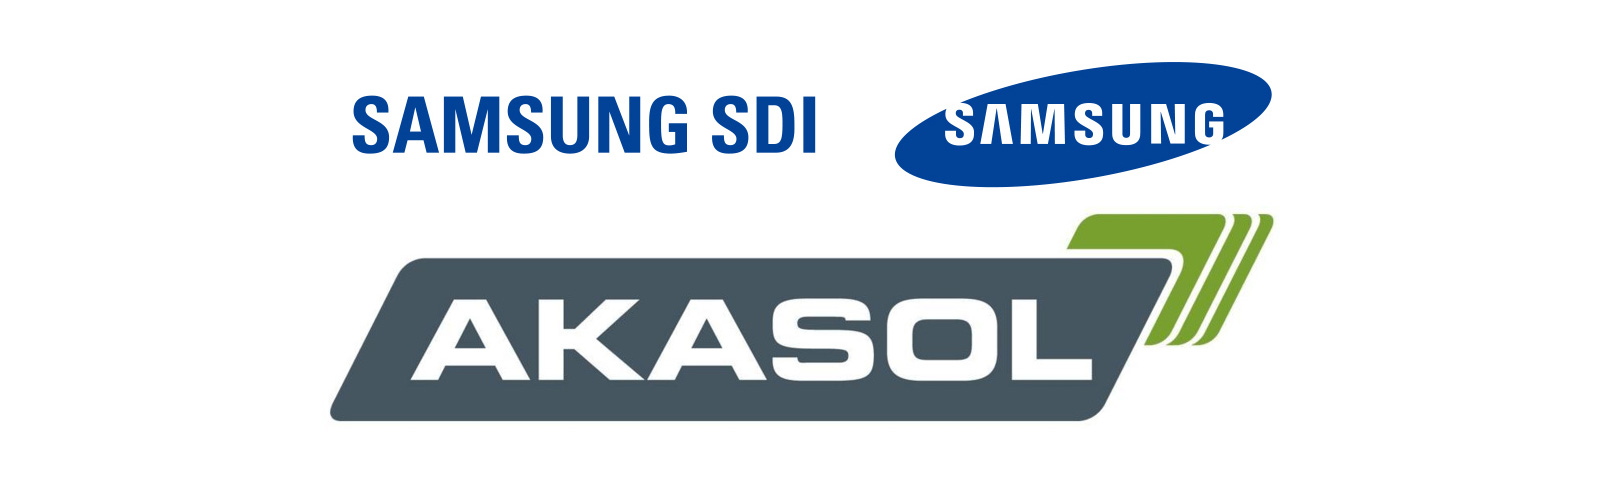 Samsung SDI will supply battery cells and modules to Akasol for two global commercial vehicle manufacturers